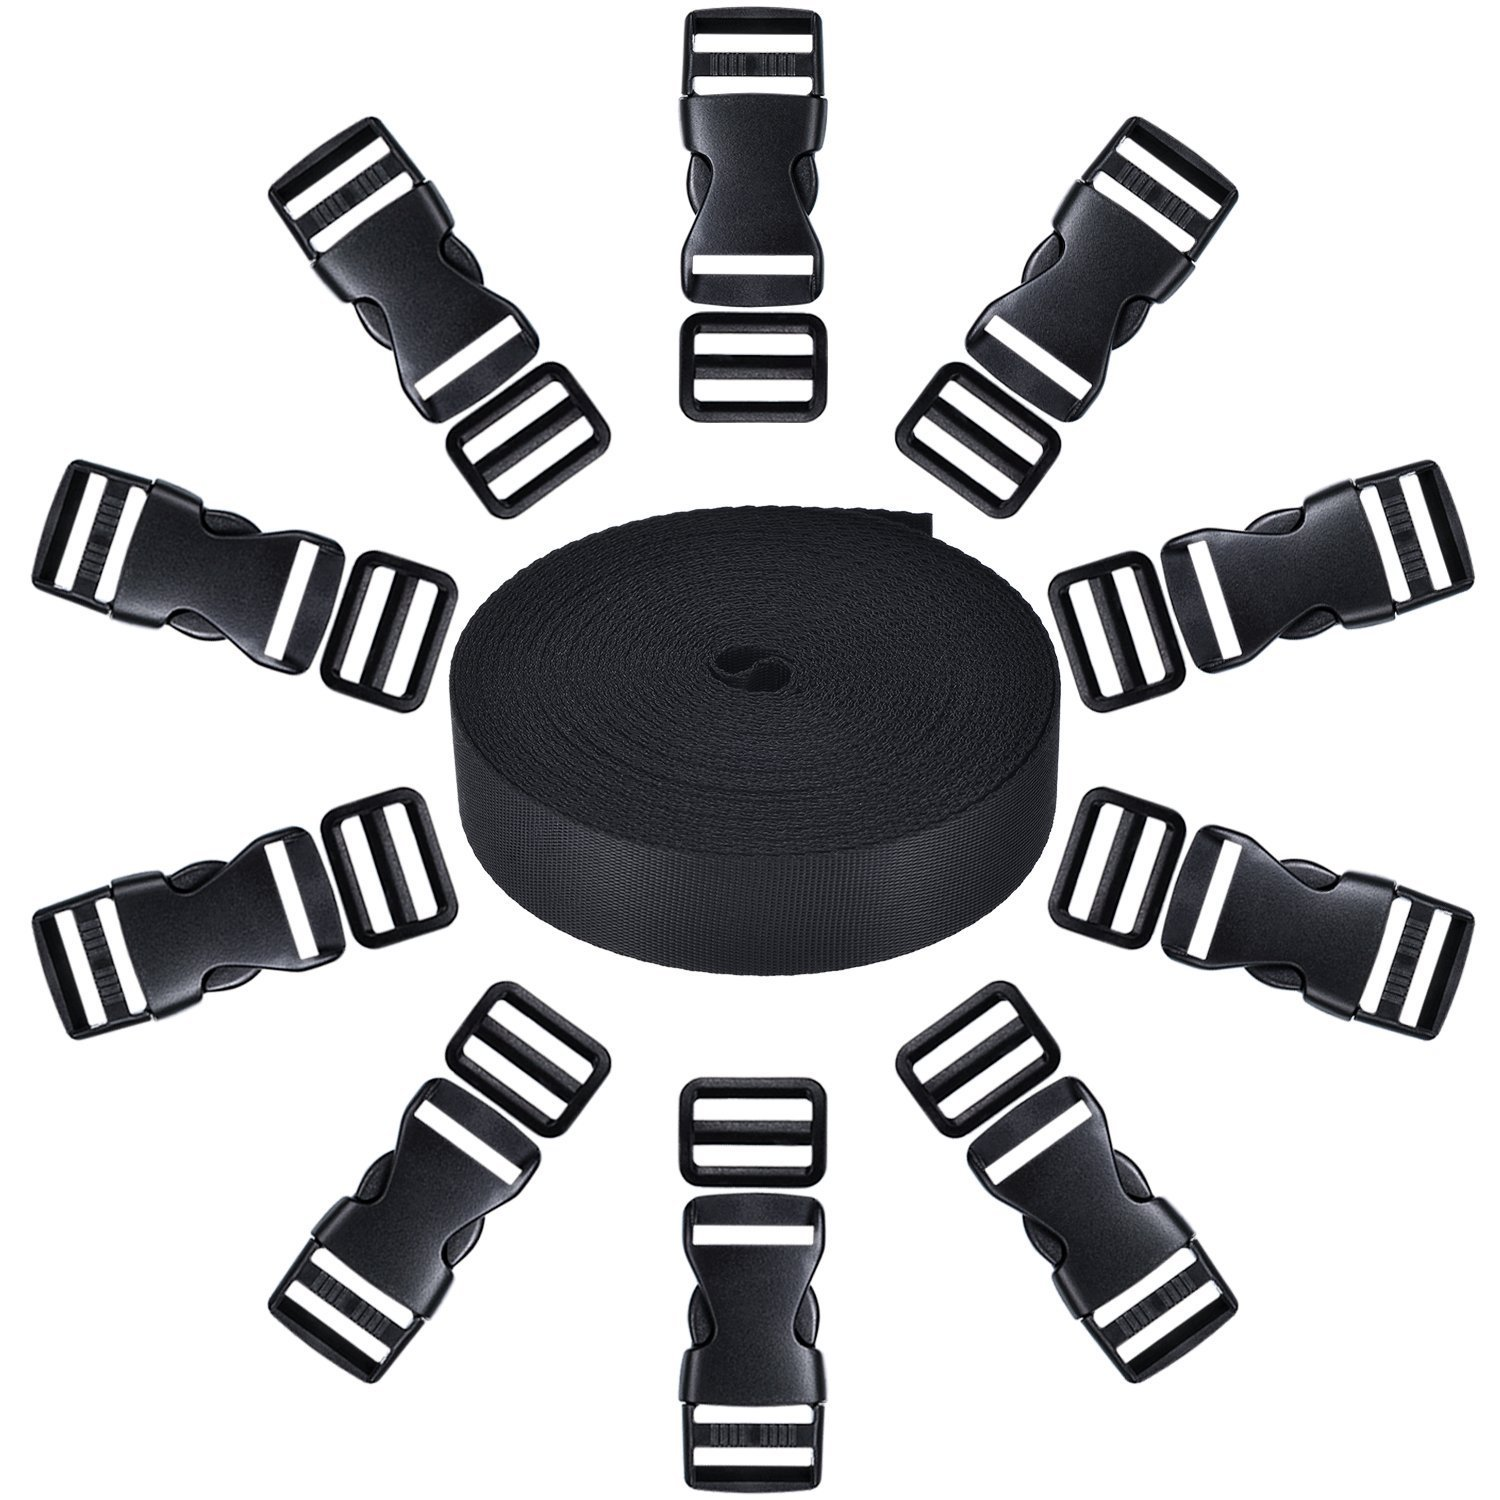 10 Set Black Plastic 1 Inch Flat Side Release Buckles and 10 Pieces Tri-glide Adjustment Clips Compatible with 1 Roll 1 Inch Wide 10 Yards Black Nylon Webbing Strap Shappy